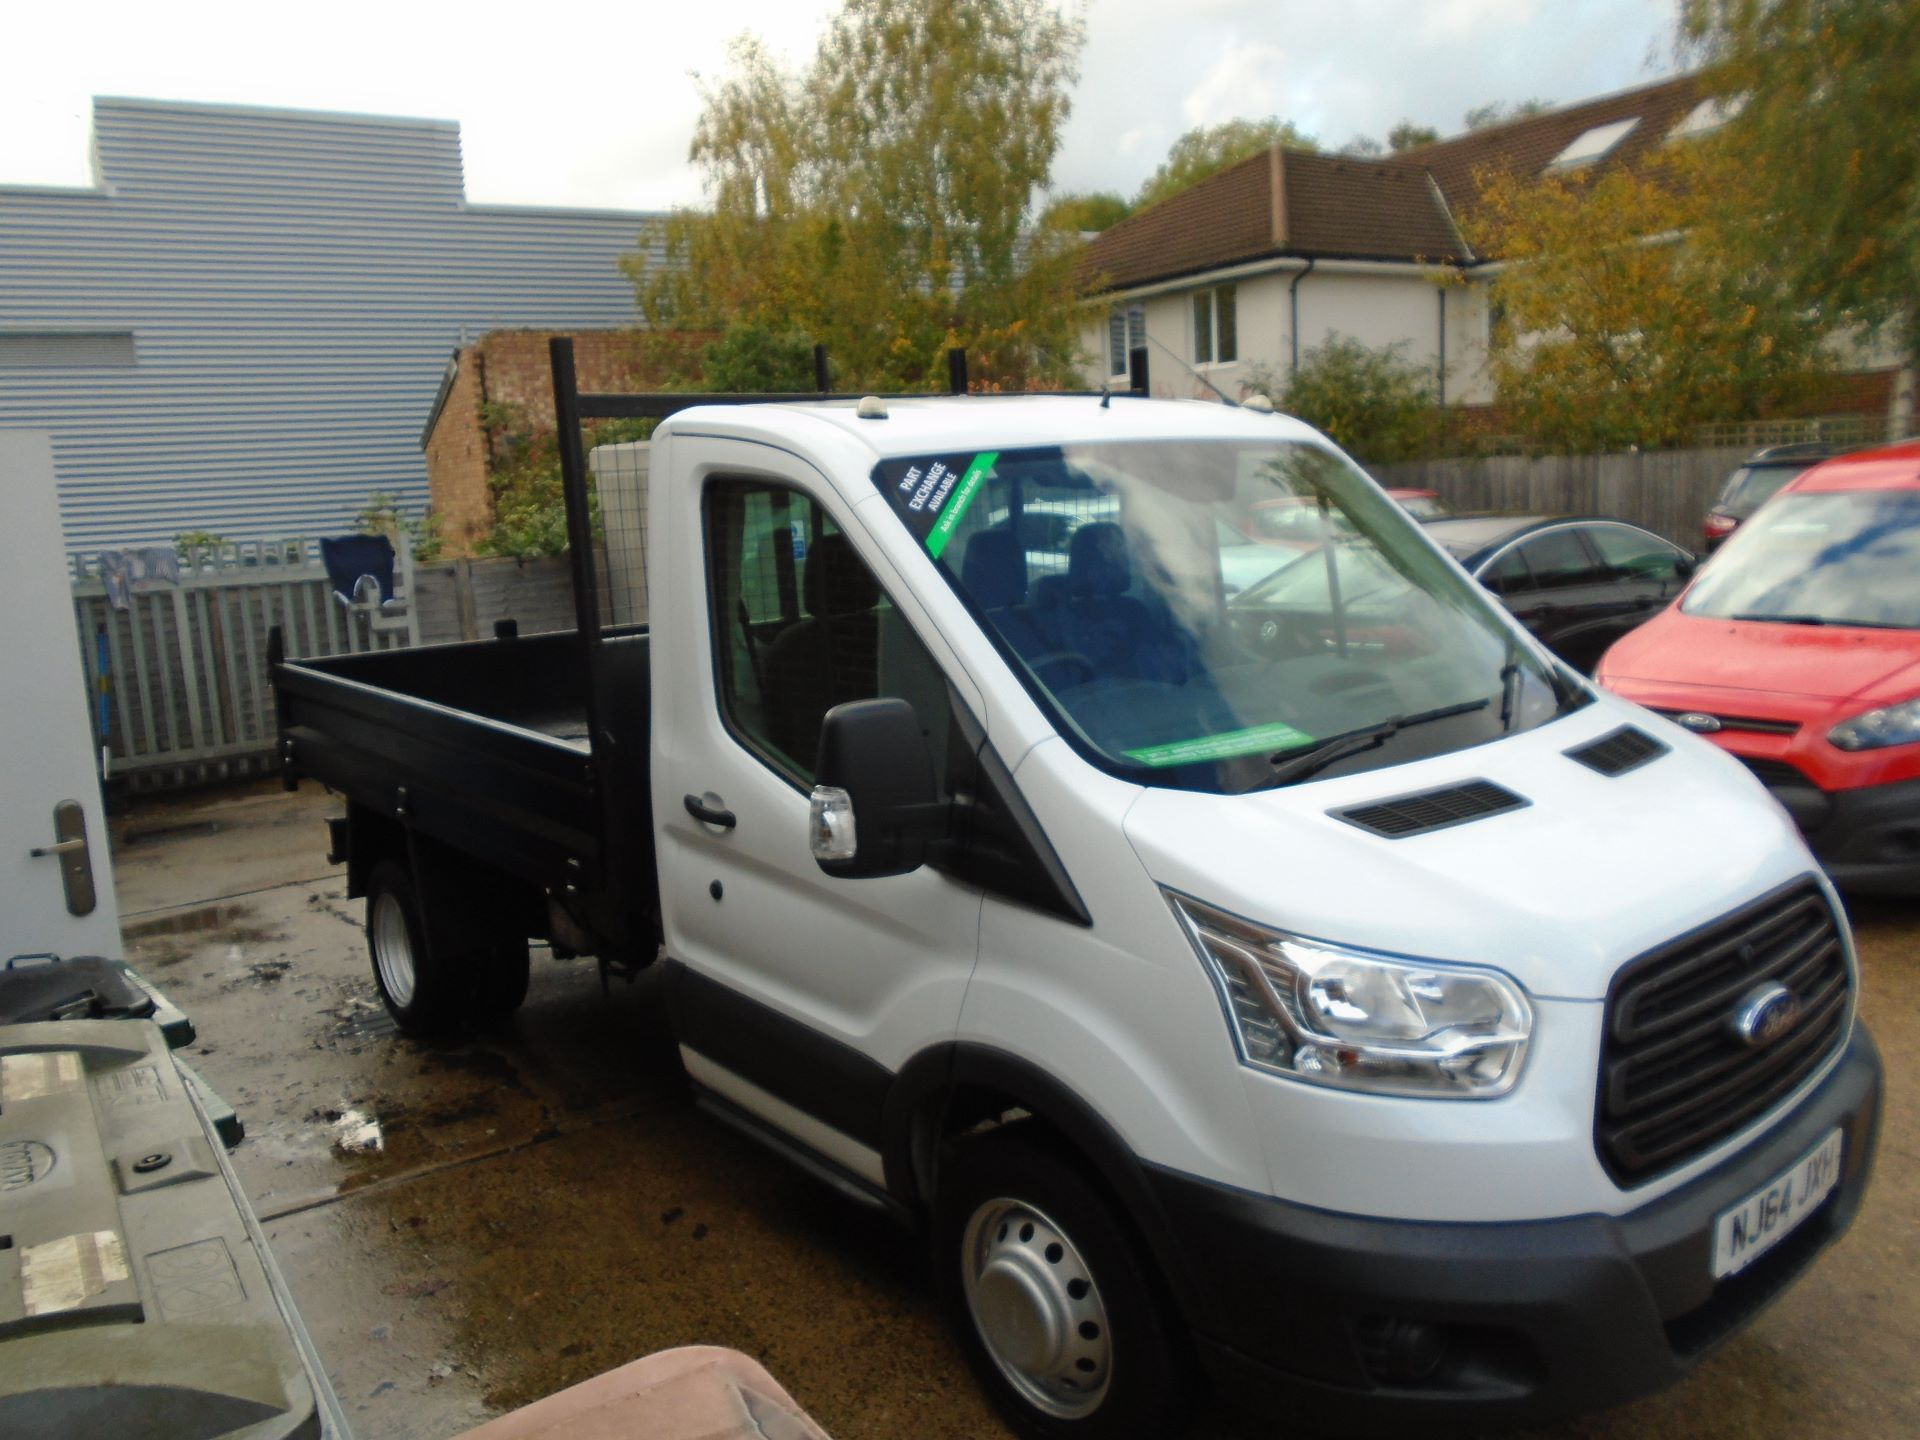 2014 Ford Transit 2.2 Tdci 100Ps Chassis Cab(EURO 5) (NJ64JXH)